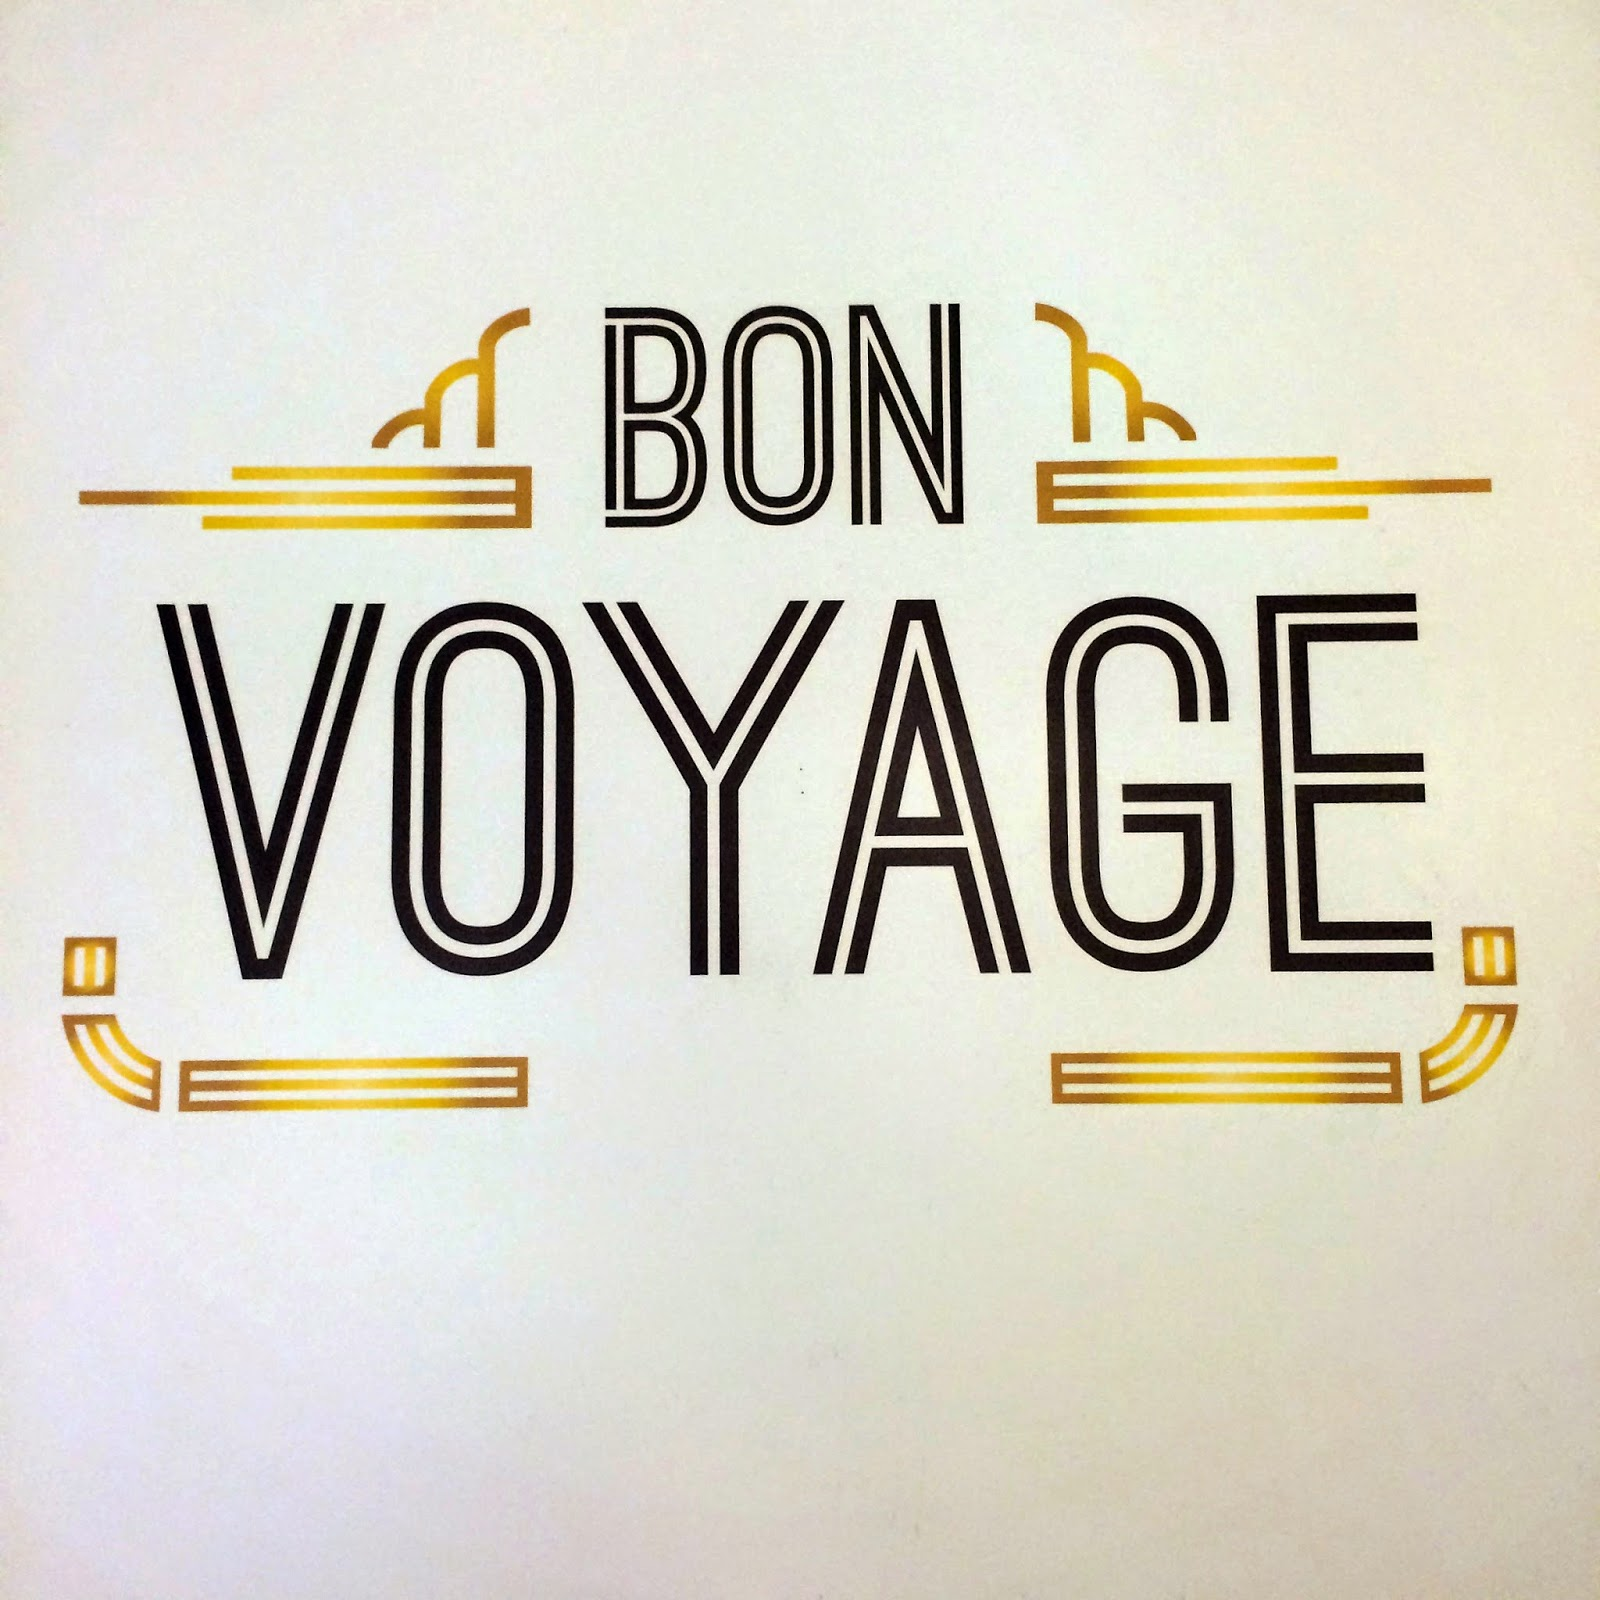 Housekeeping Quotes Fidgety Fingers Bon Voyage  Travel Quotes For The Wander Bug